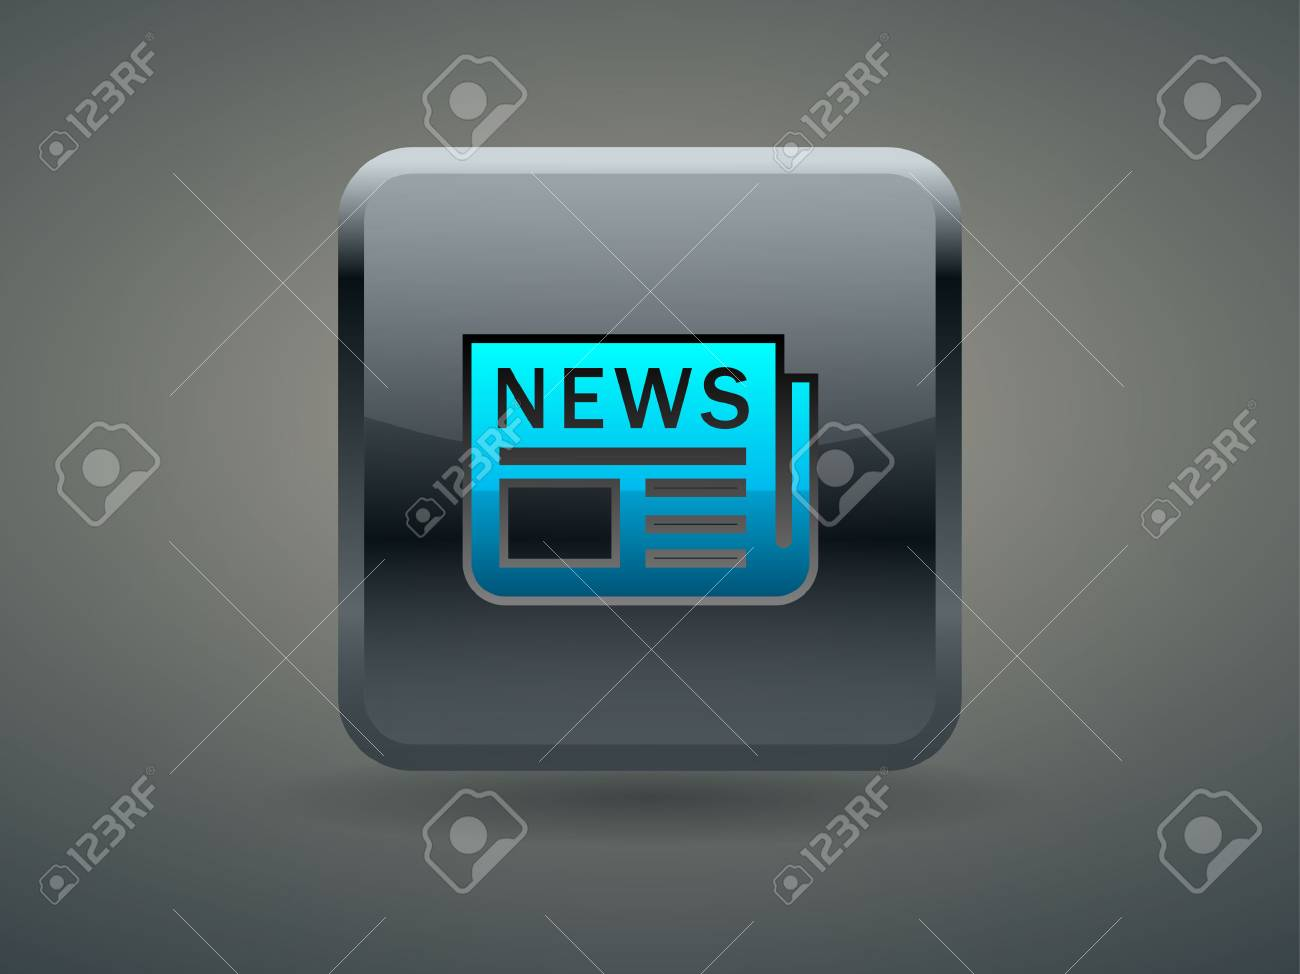 3d Vector illustration of news icon Stock Vector - 29188871